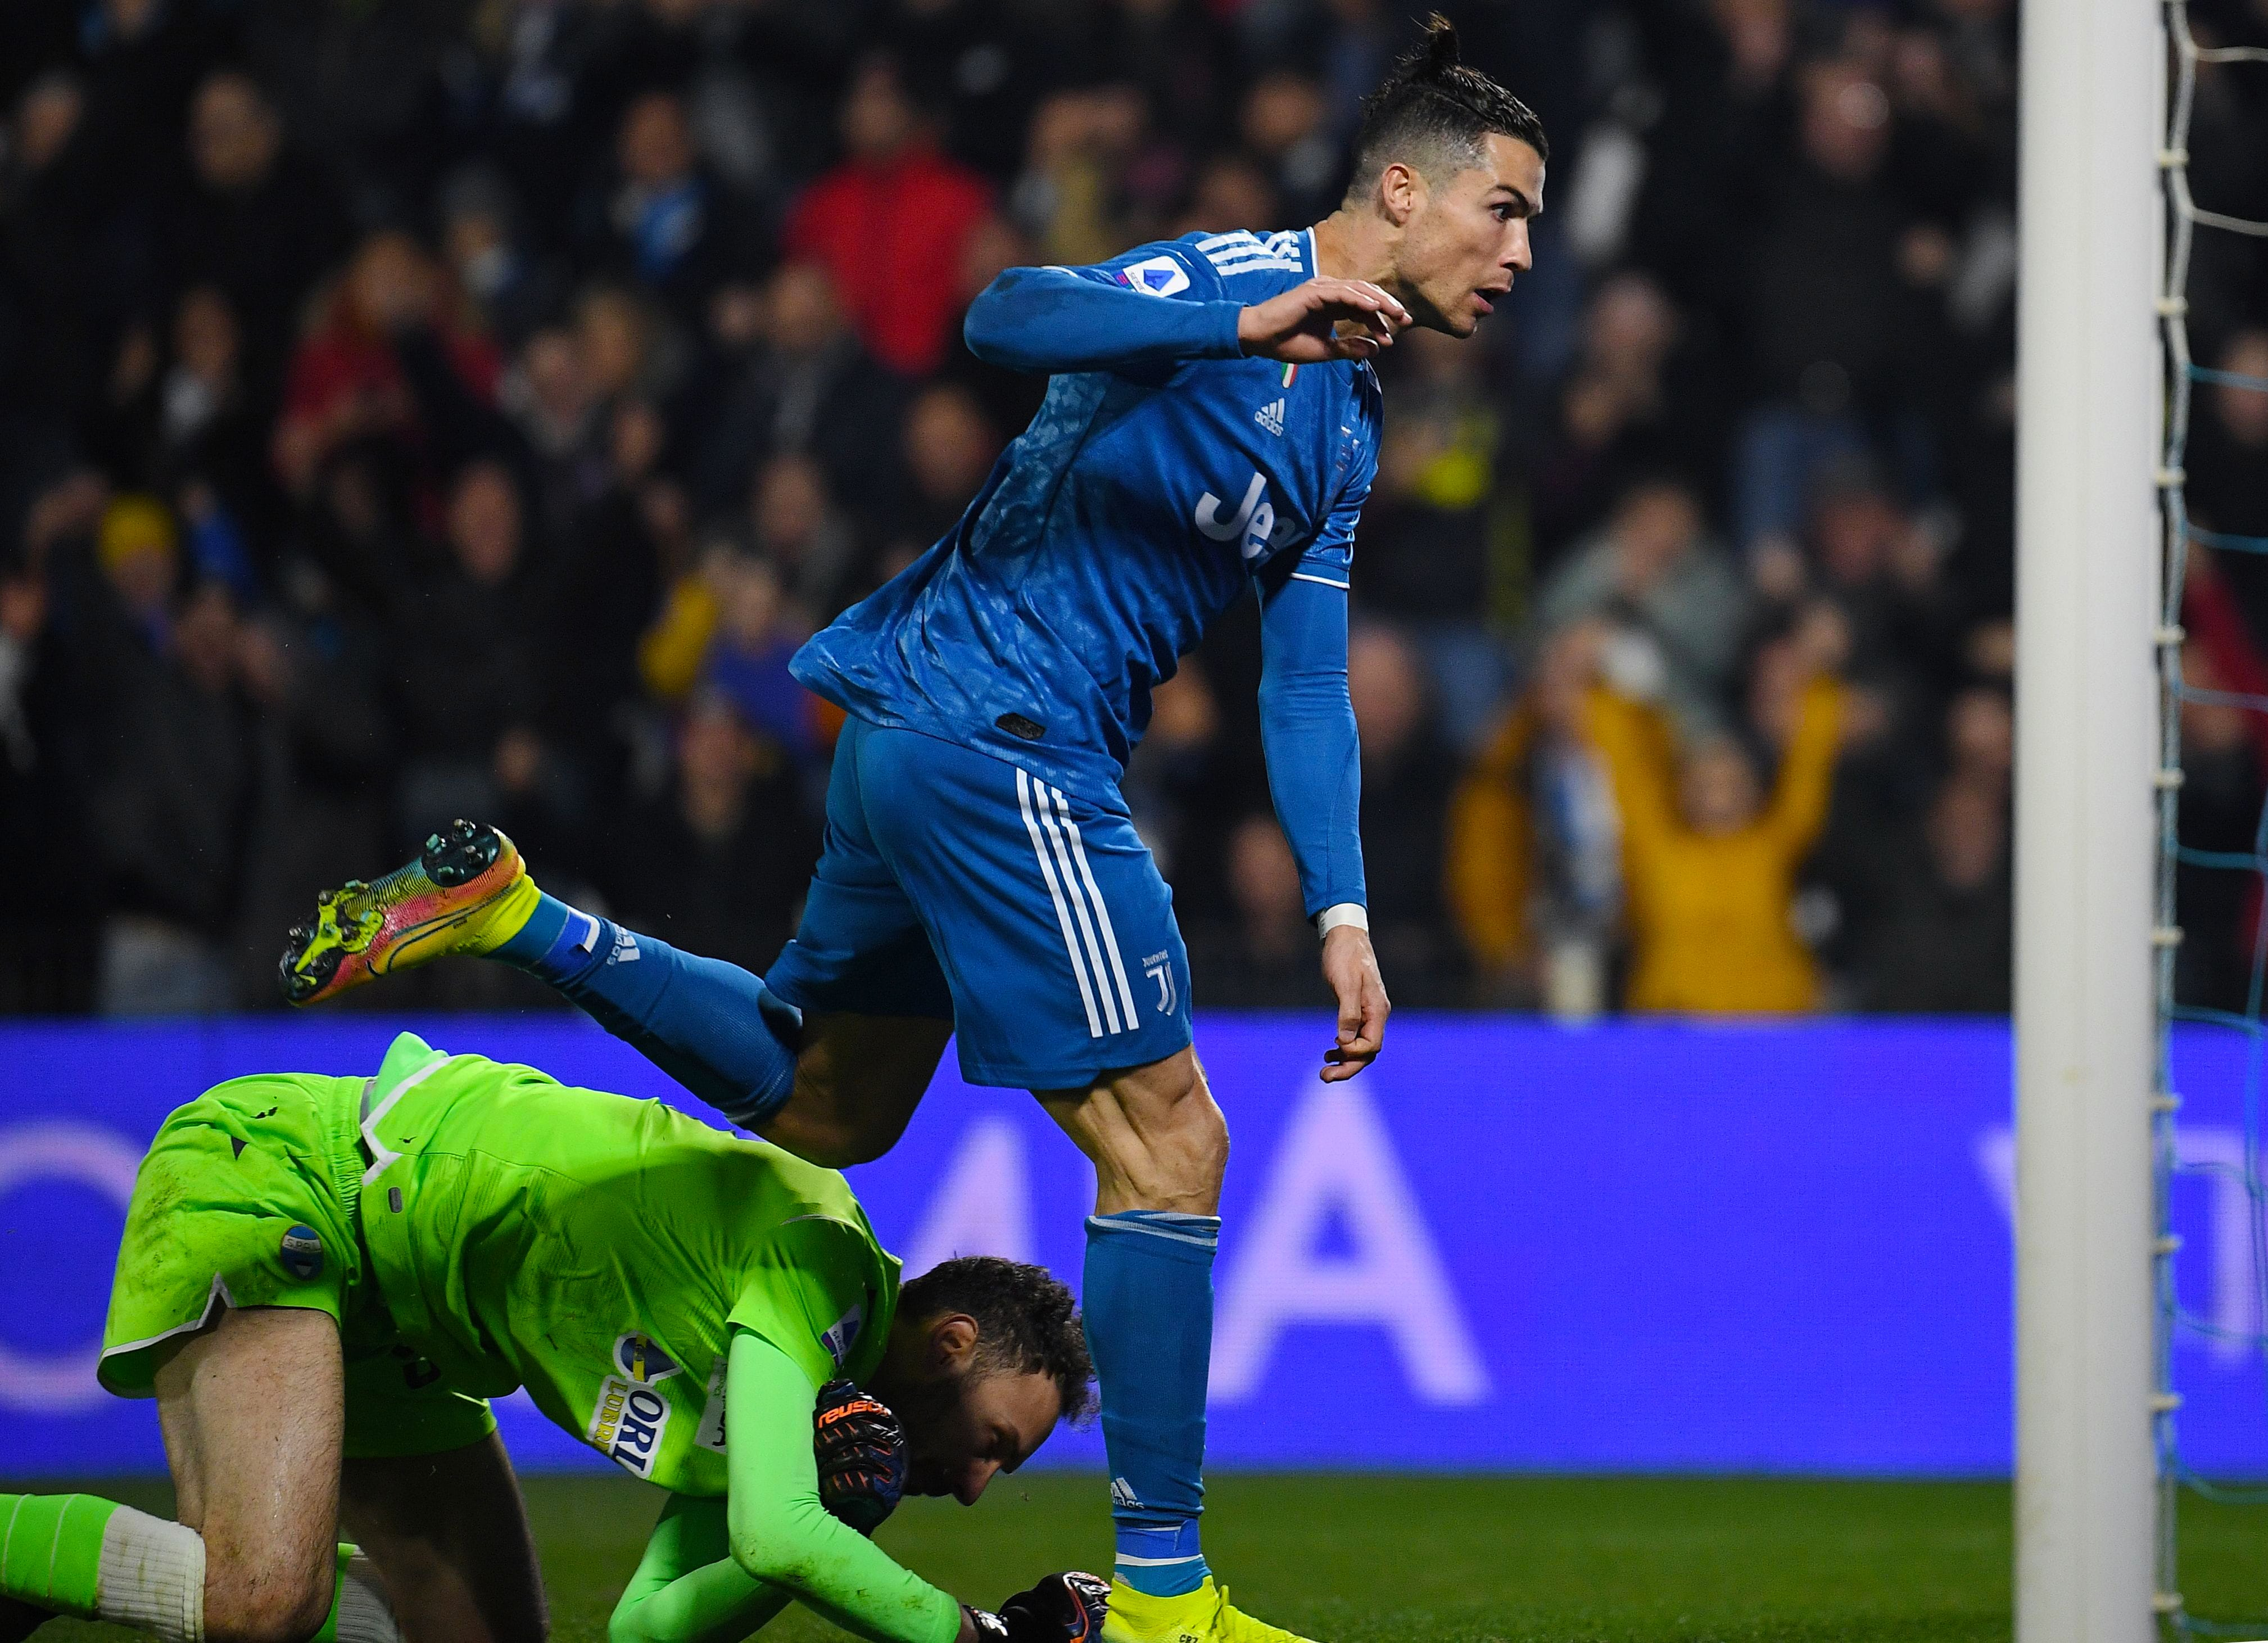 Ronaldo scores to mark 1,000th appearance